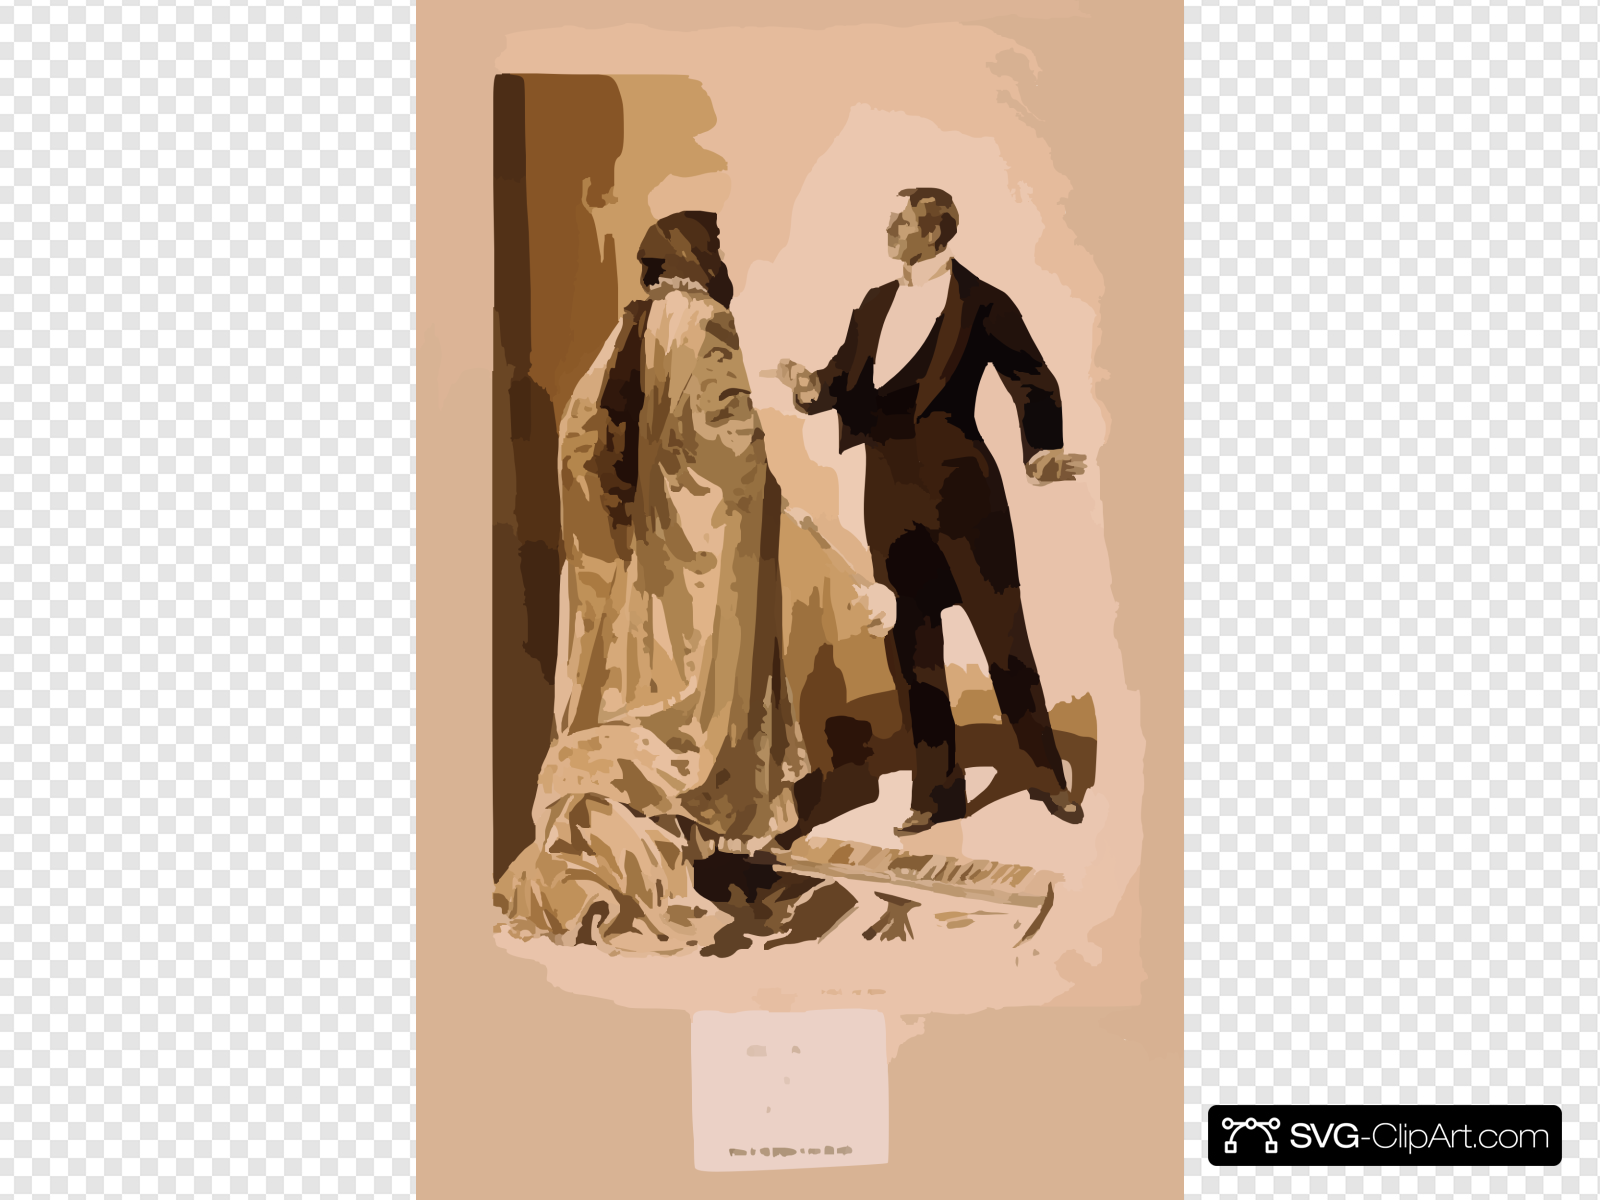 man In Tuxedo Questioning Woman In Cloak & Gloves] Clip art.